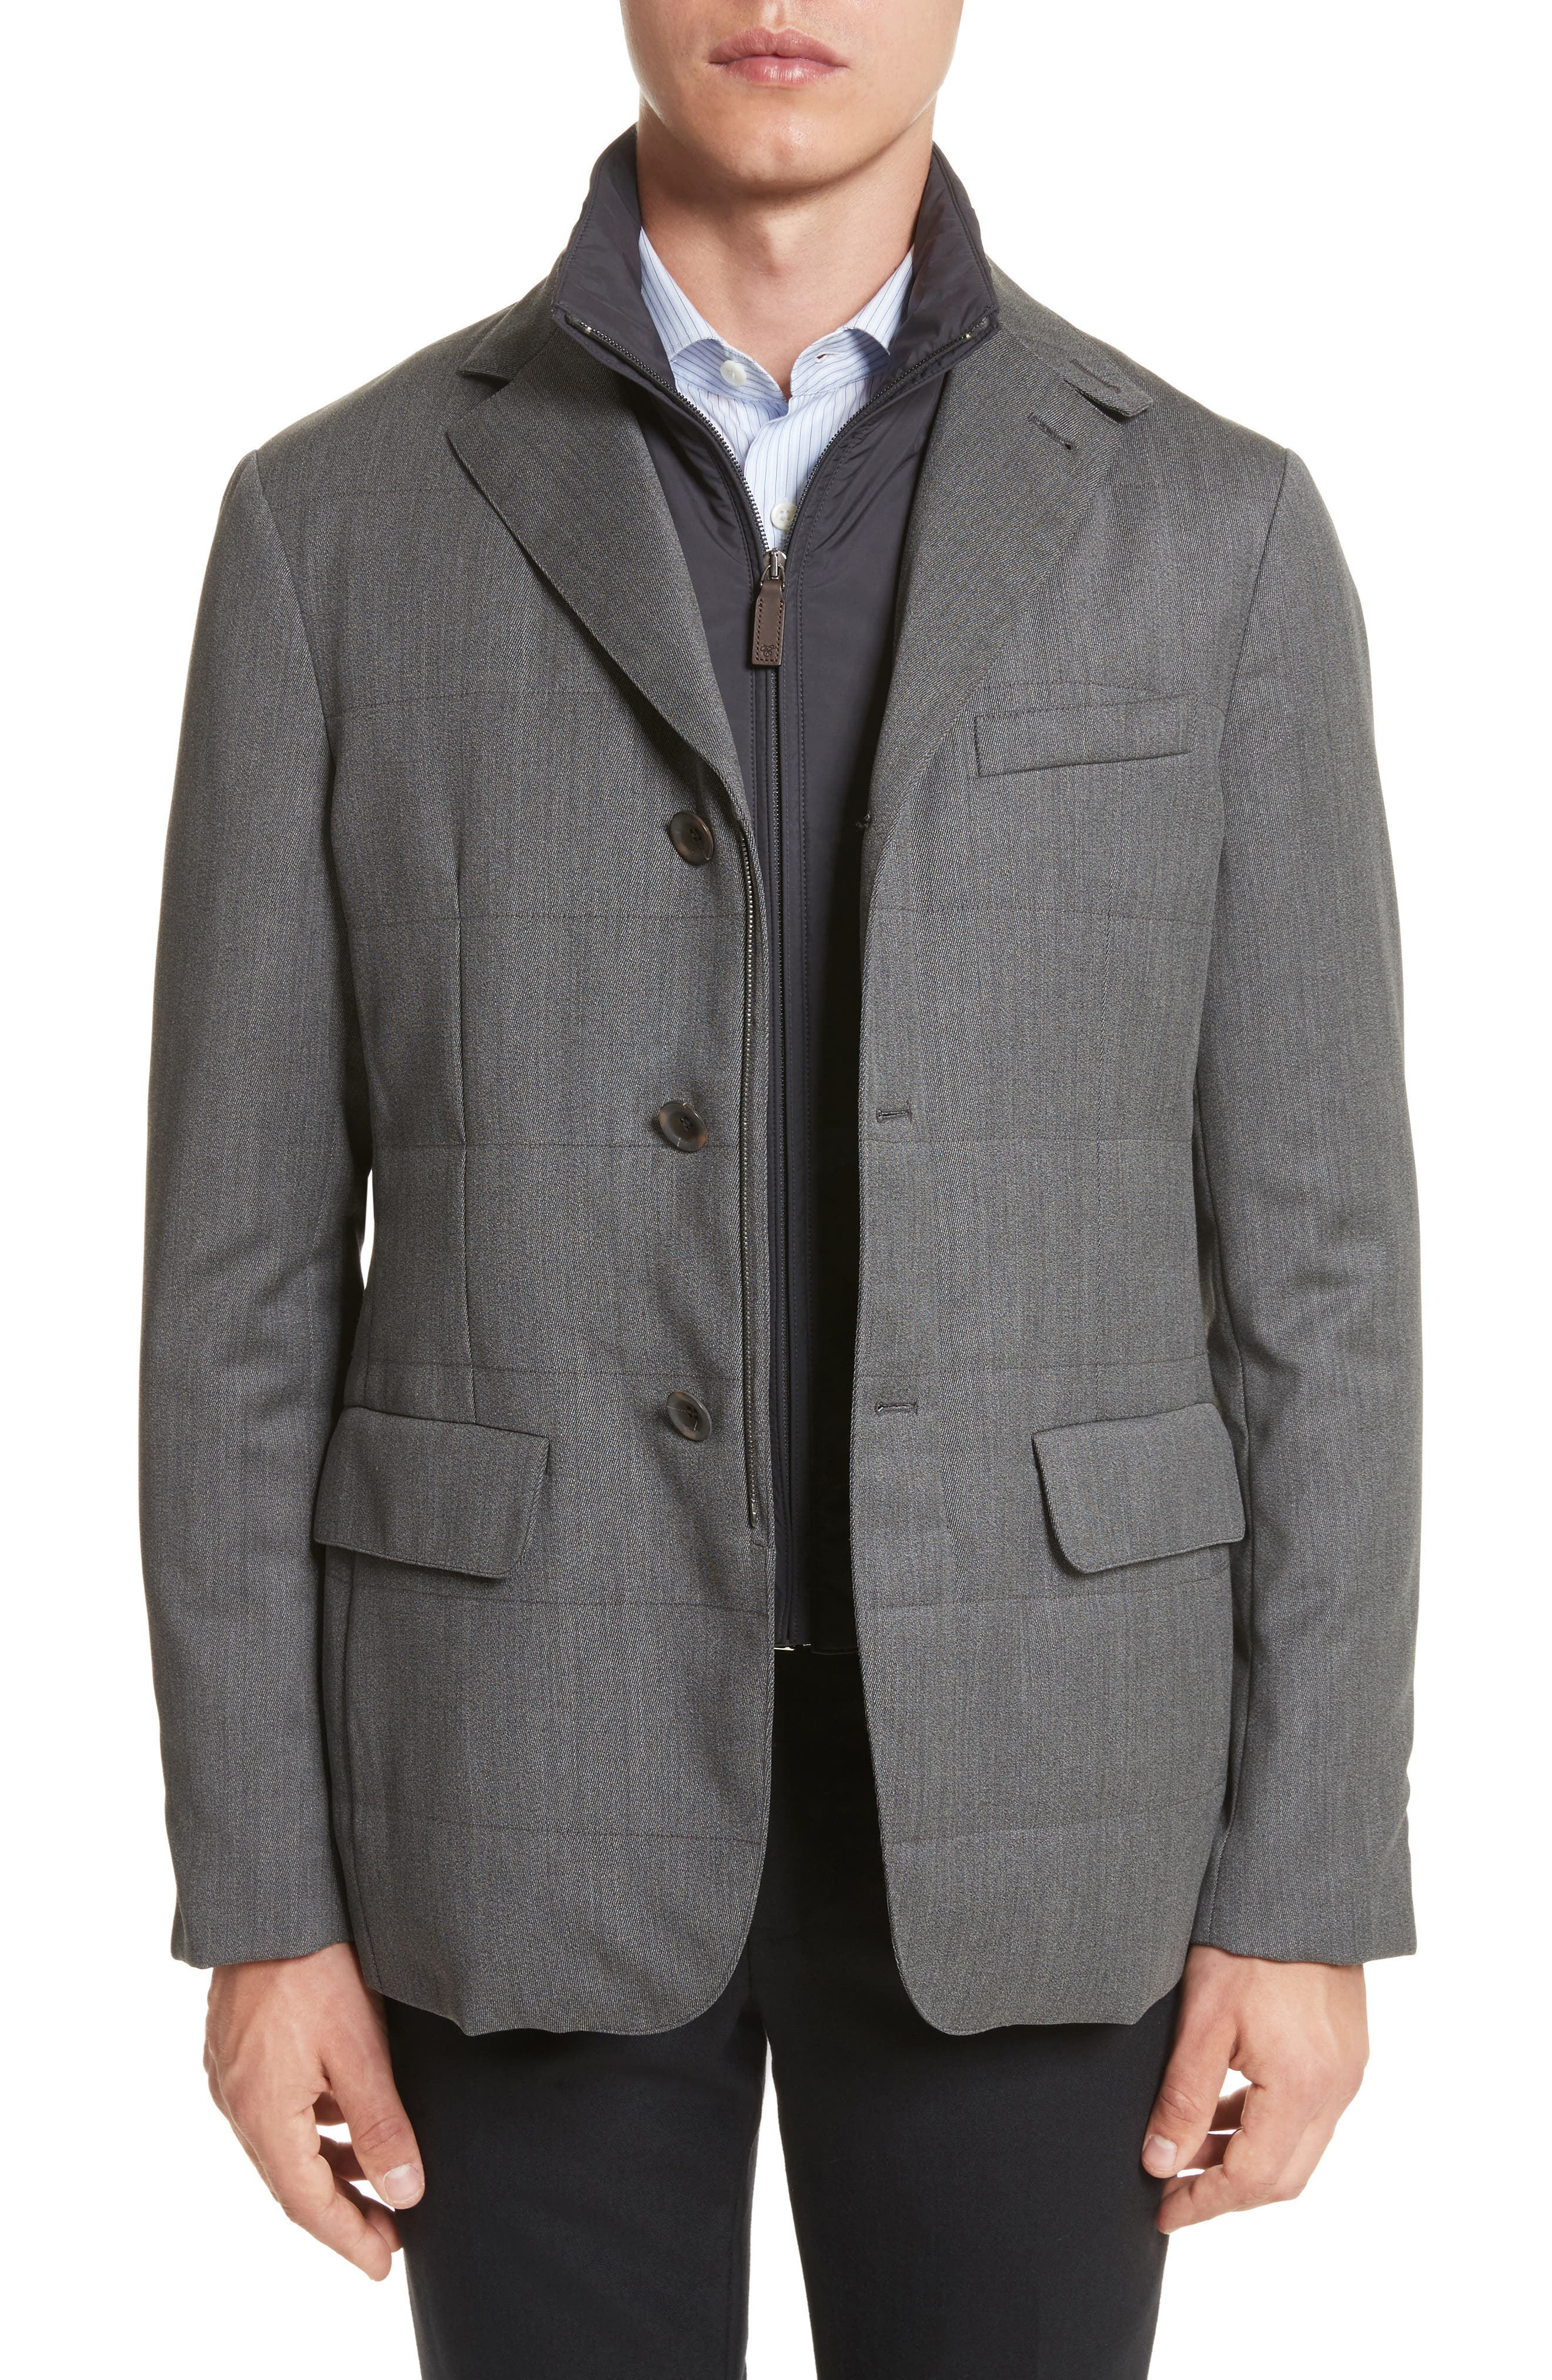 Water-Resistant Wool Jacket with Bib,                         Main,                         color, 050